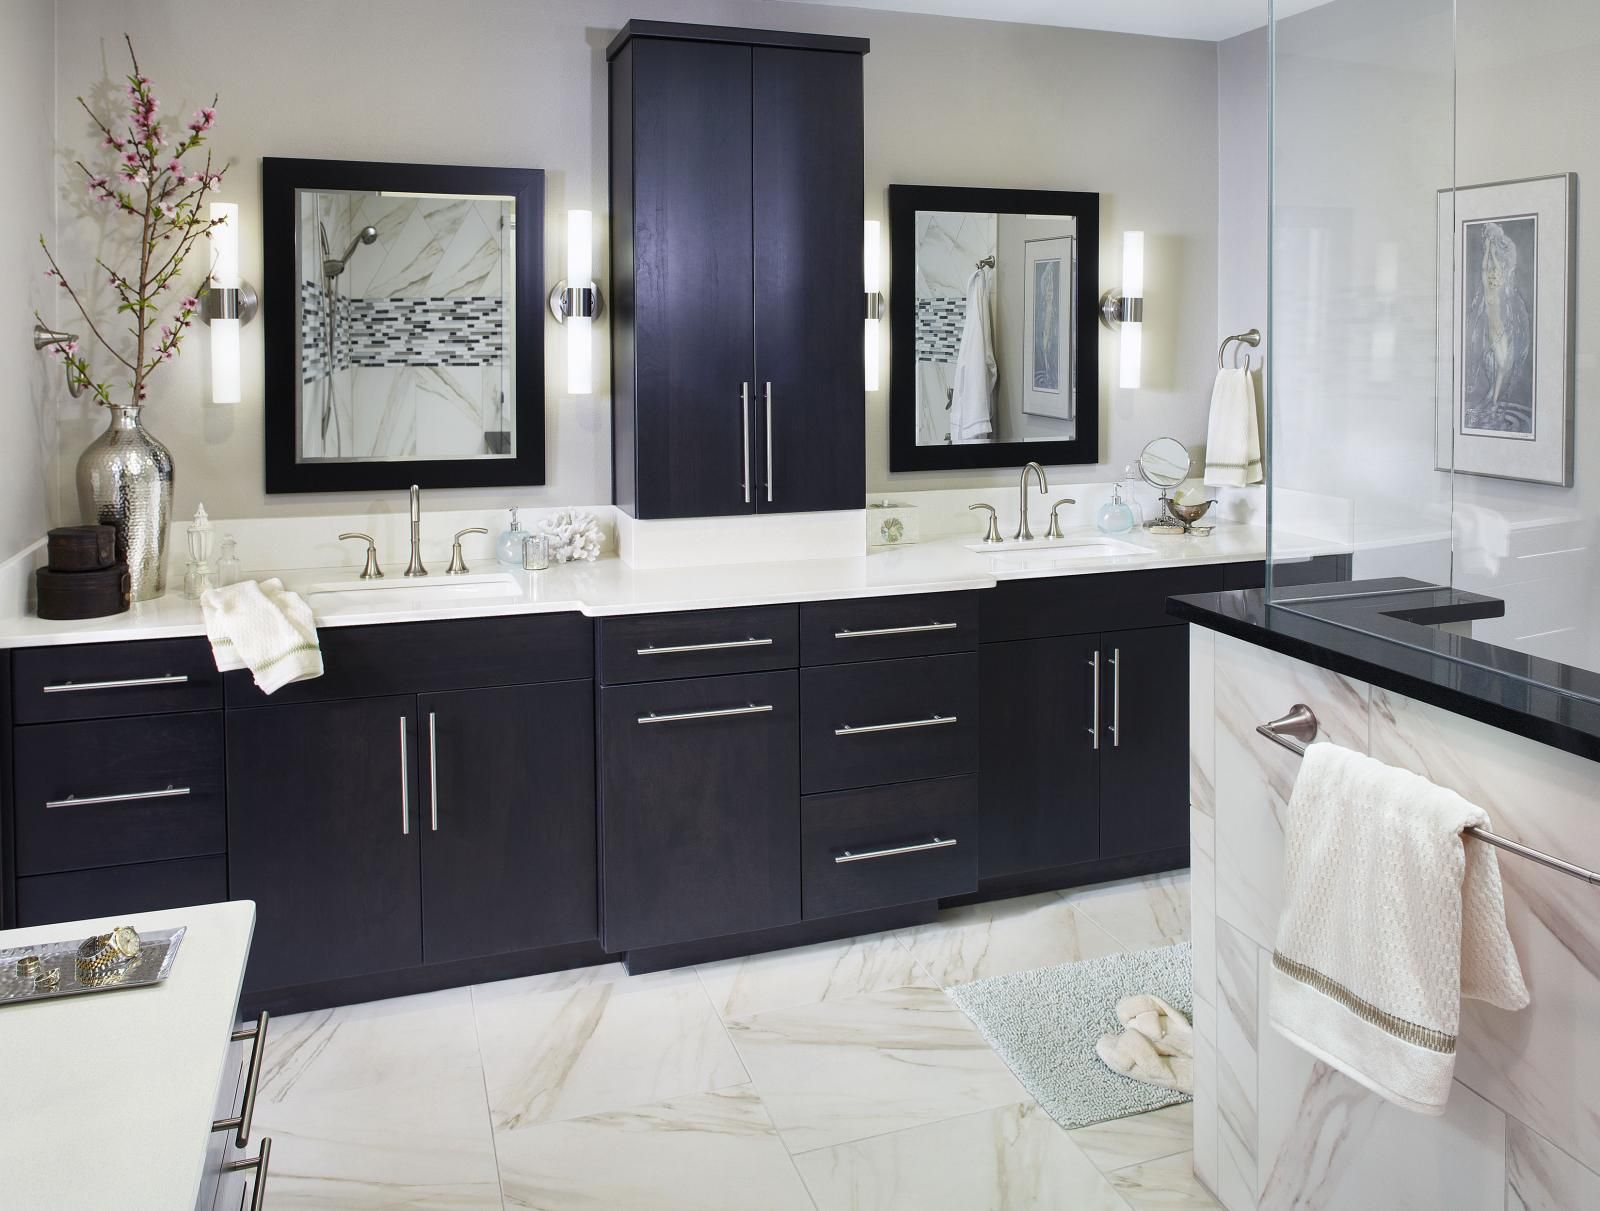 How To Design A Luxury Bathroom With Black Cabinets 2 Black